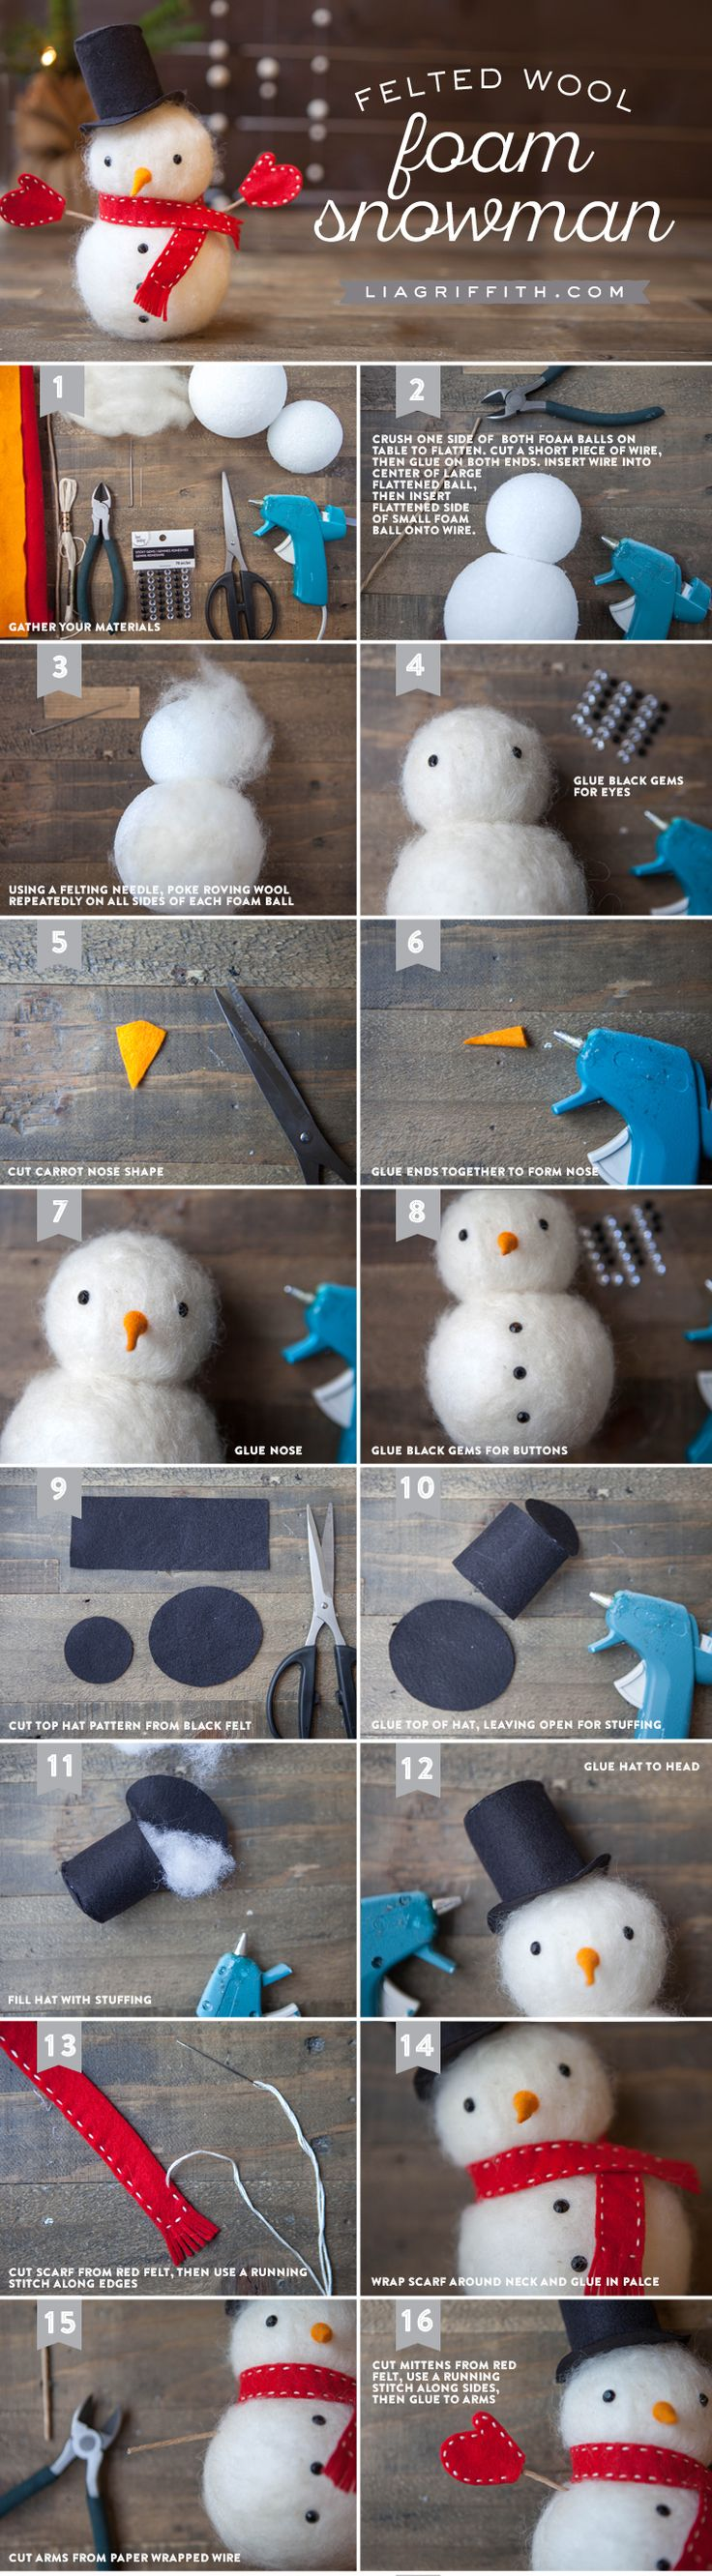 Felted Wool Foam Snowman